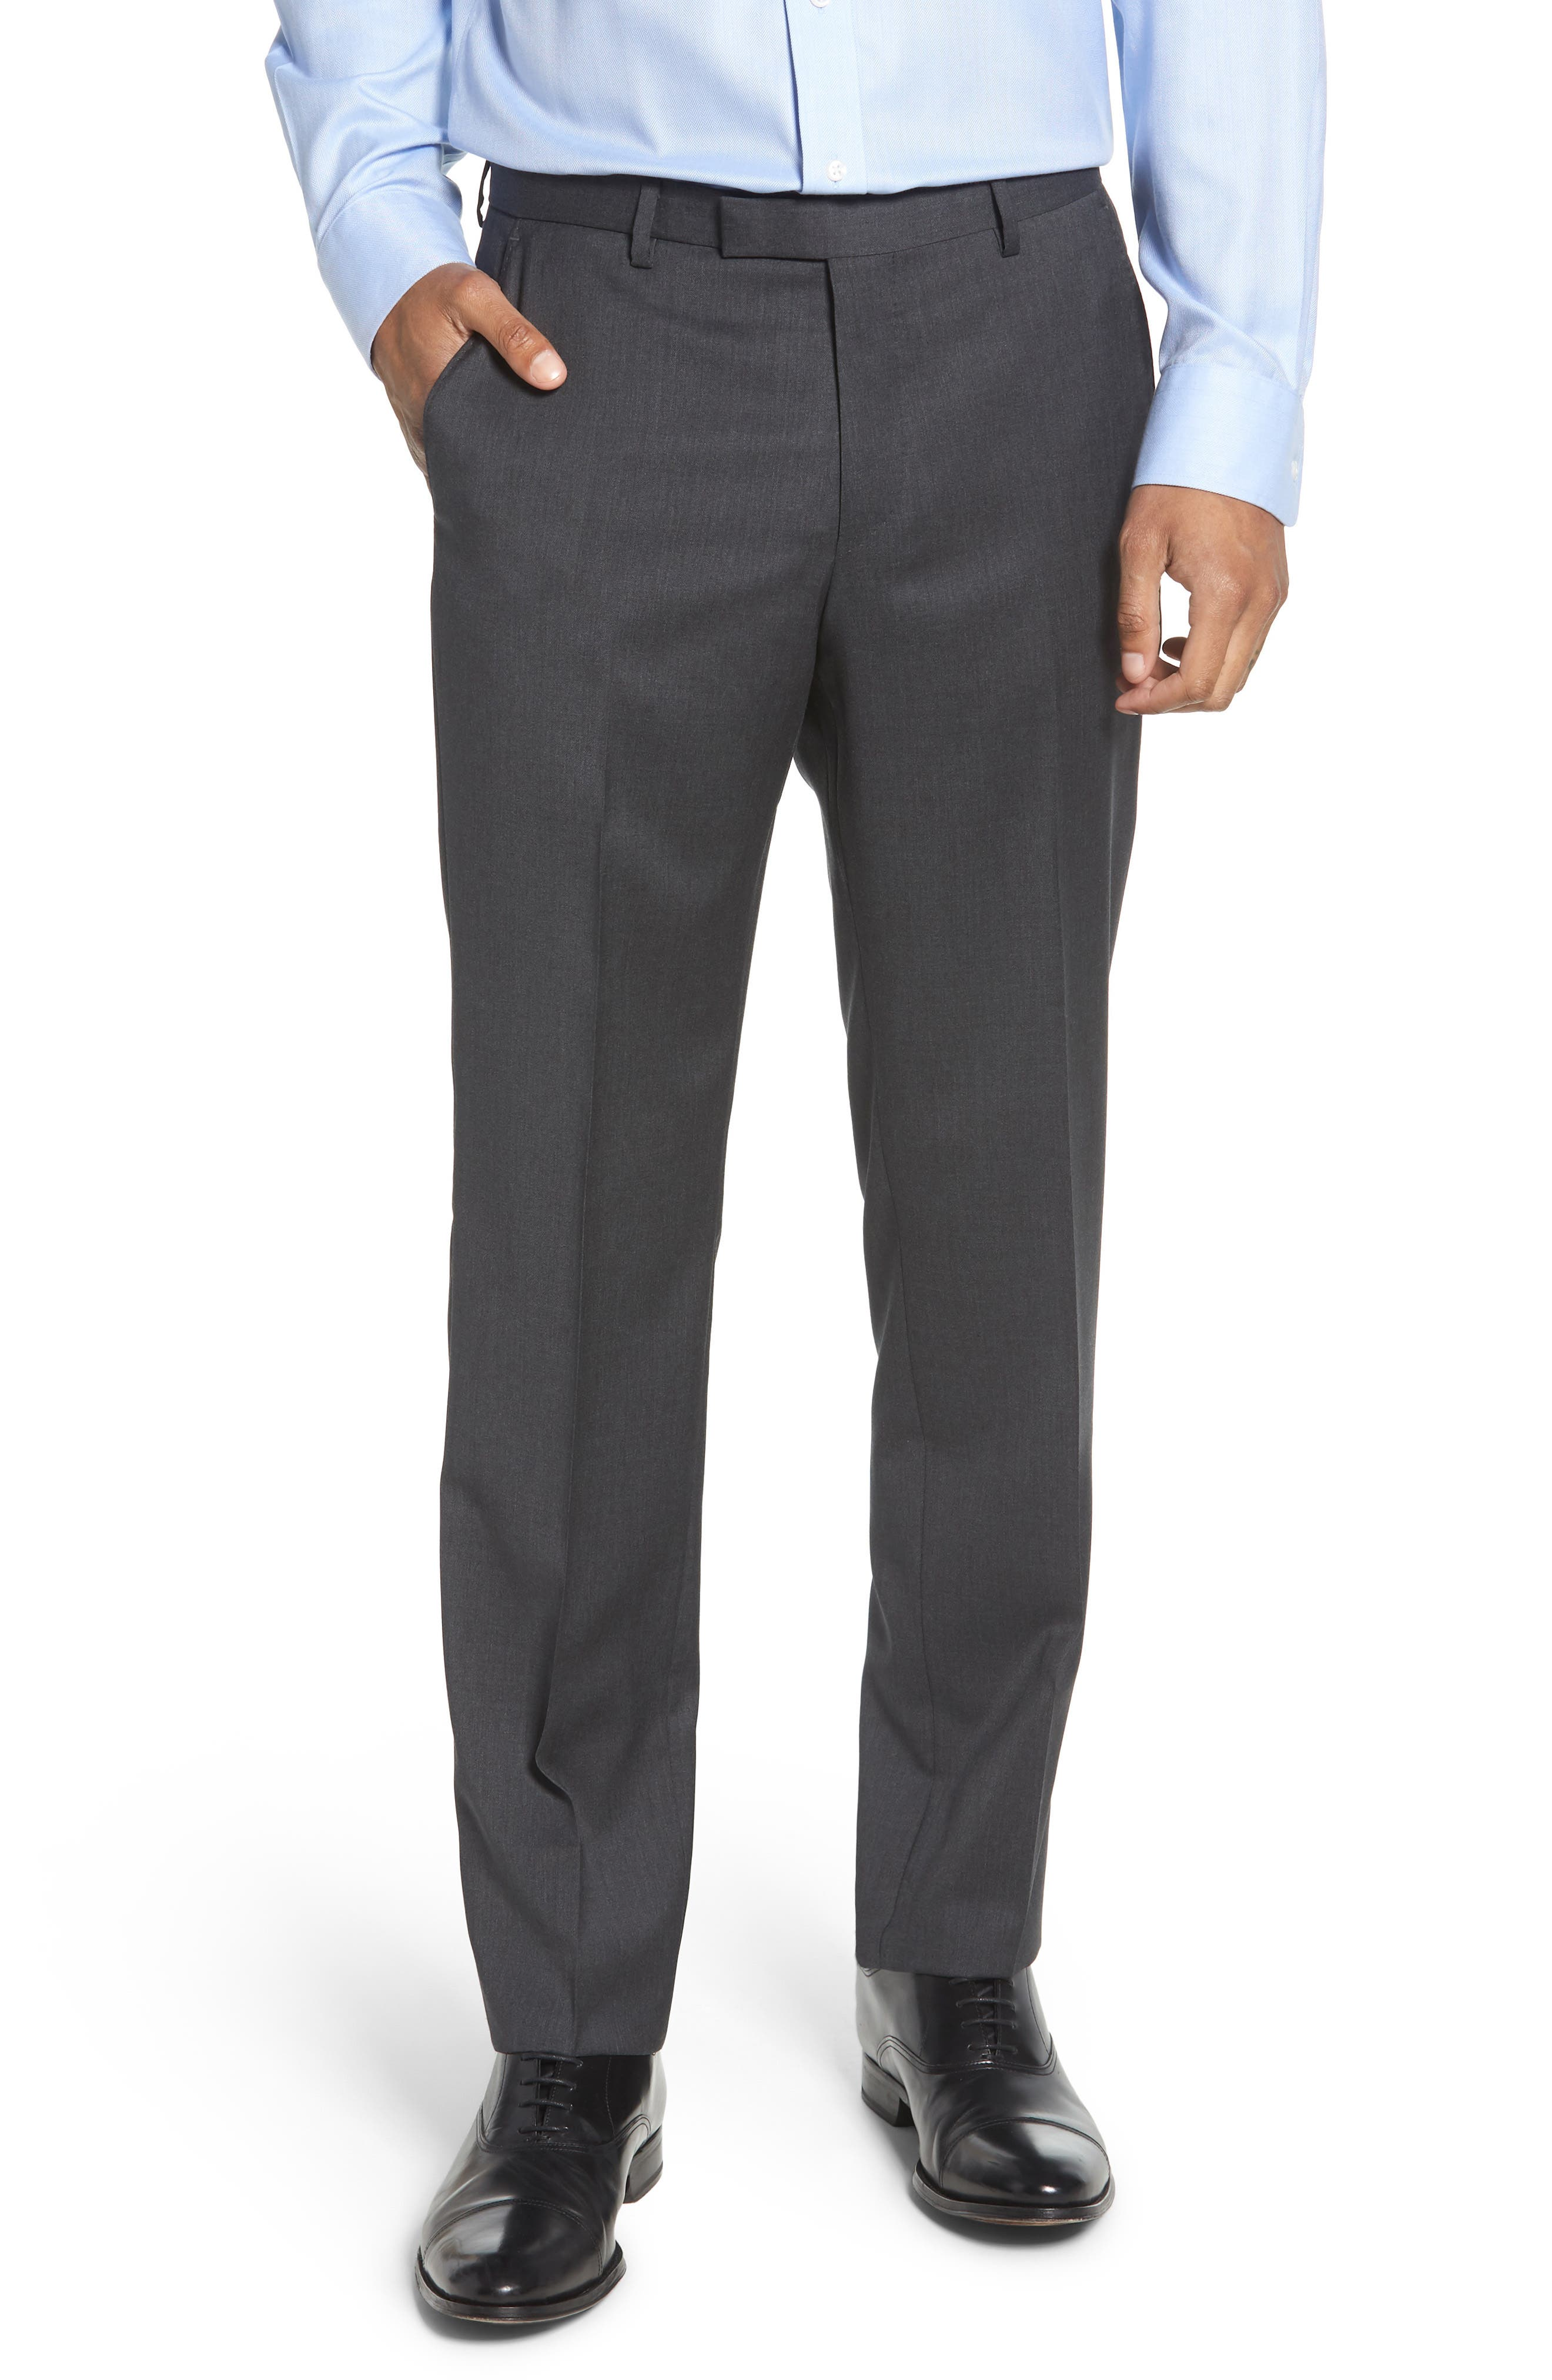 Leenon Flat Front Regular Fit Solid Wool Trousers,                         Main,                         color, CHARCOAL